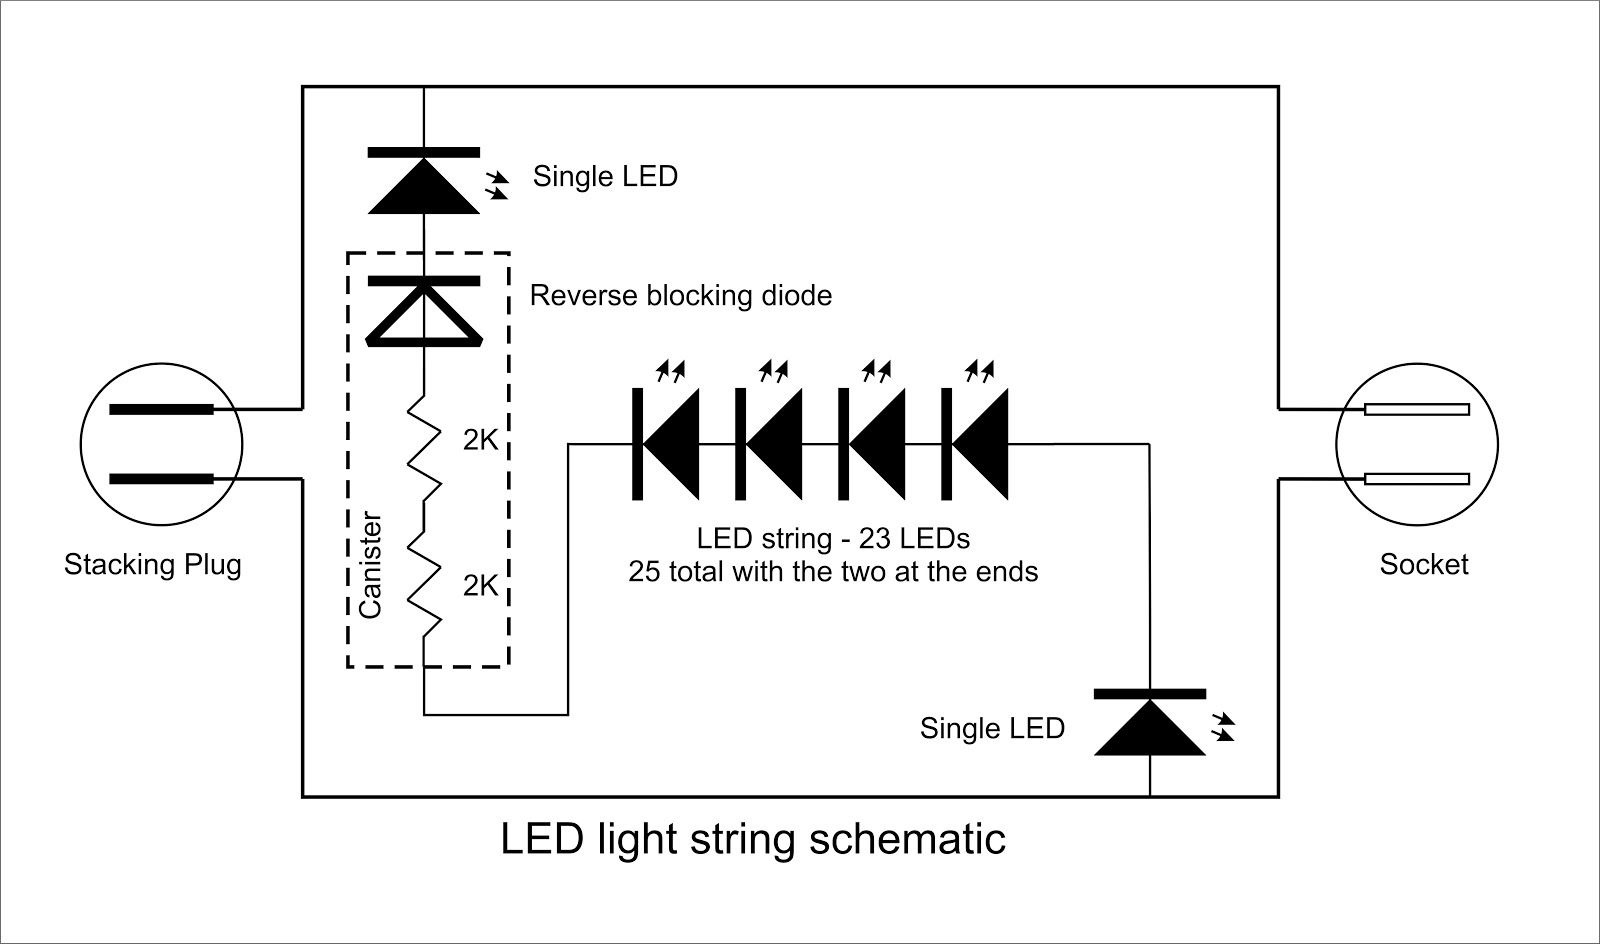 led light string schematic georgesworkshop fixing led string lights christmas lights wiring diagram repair at gsmportal.co